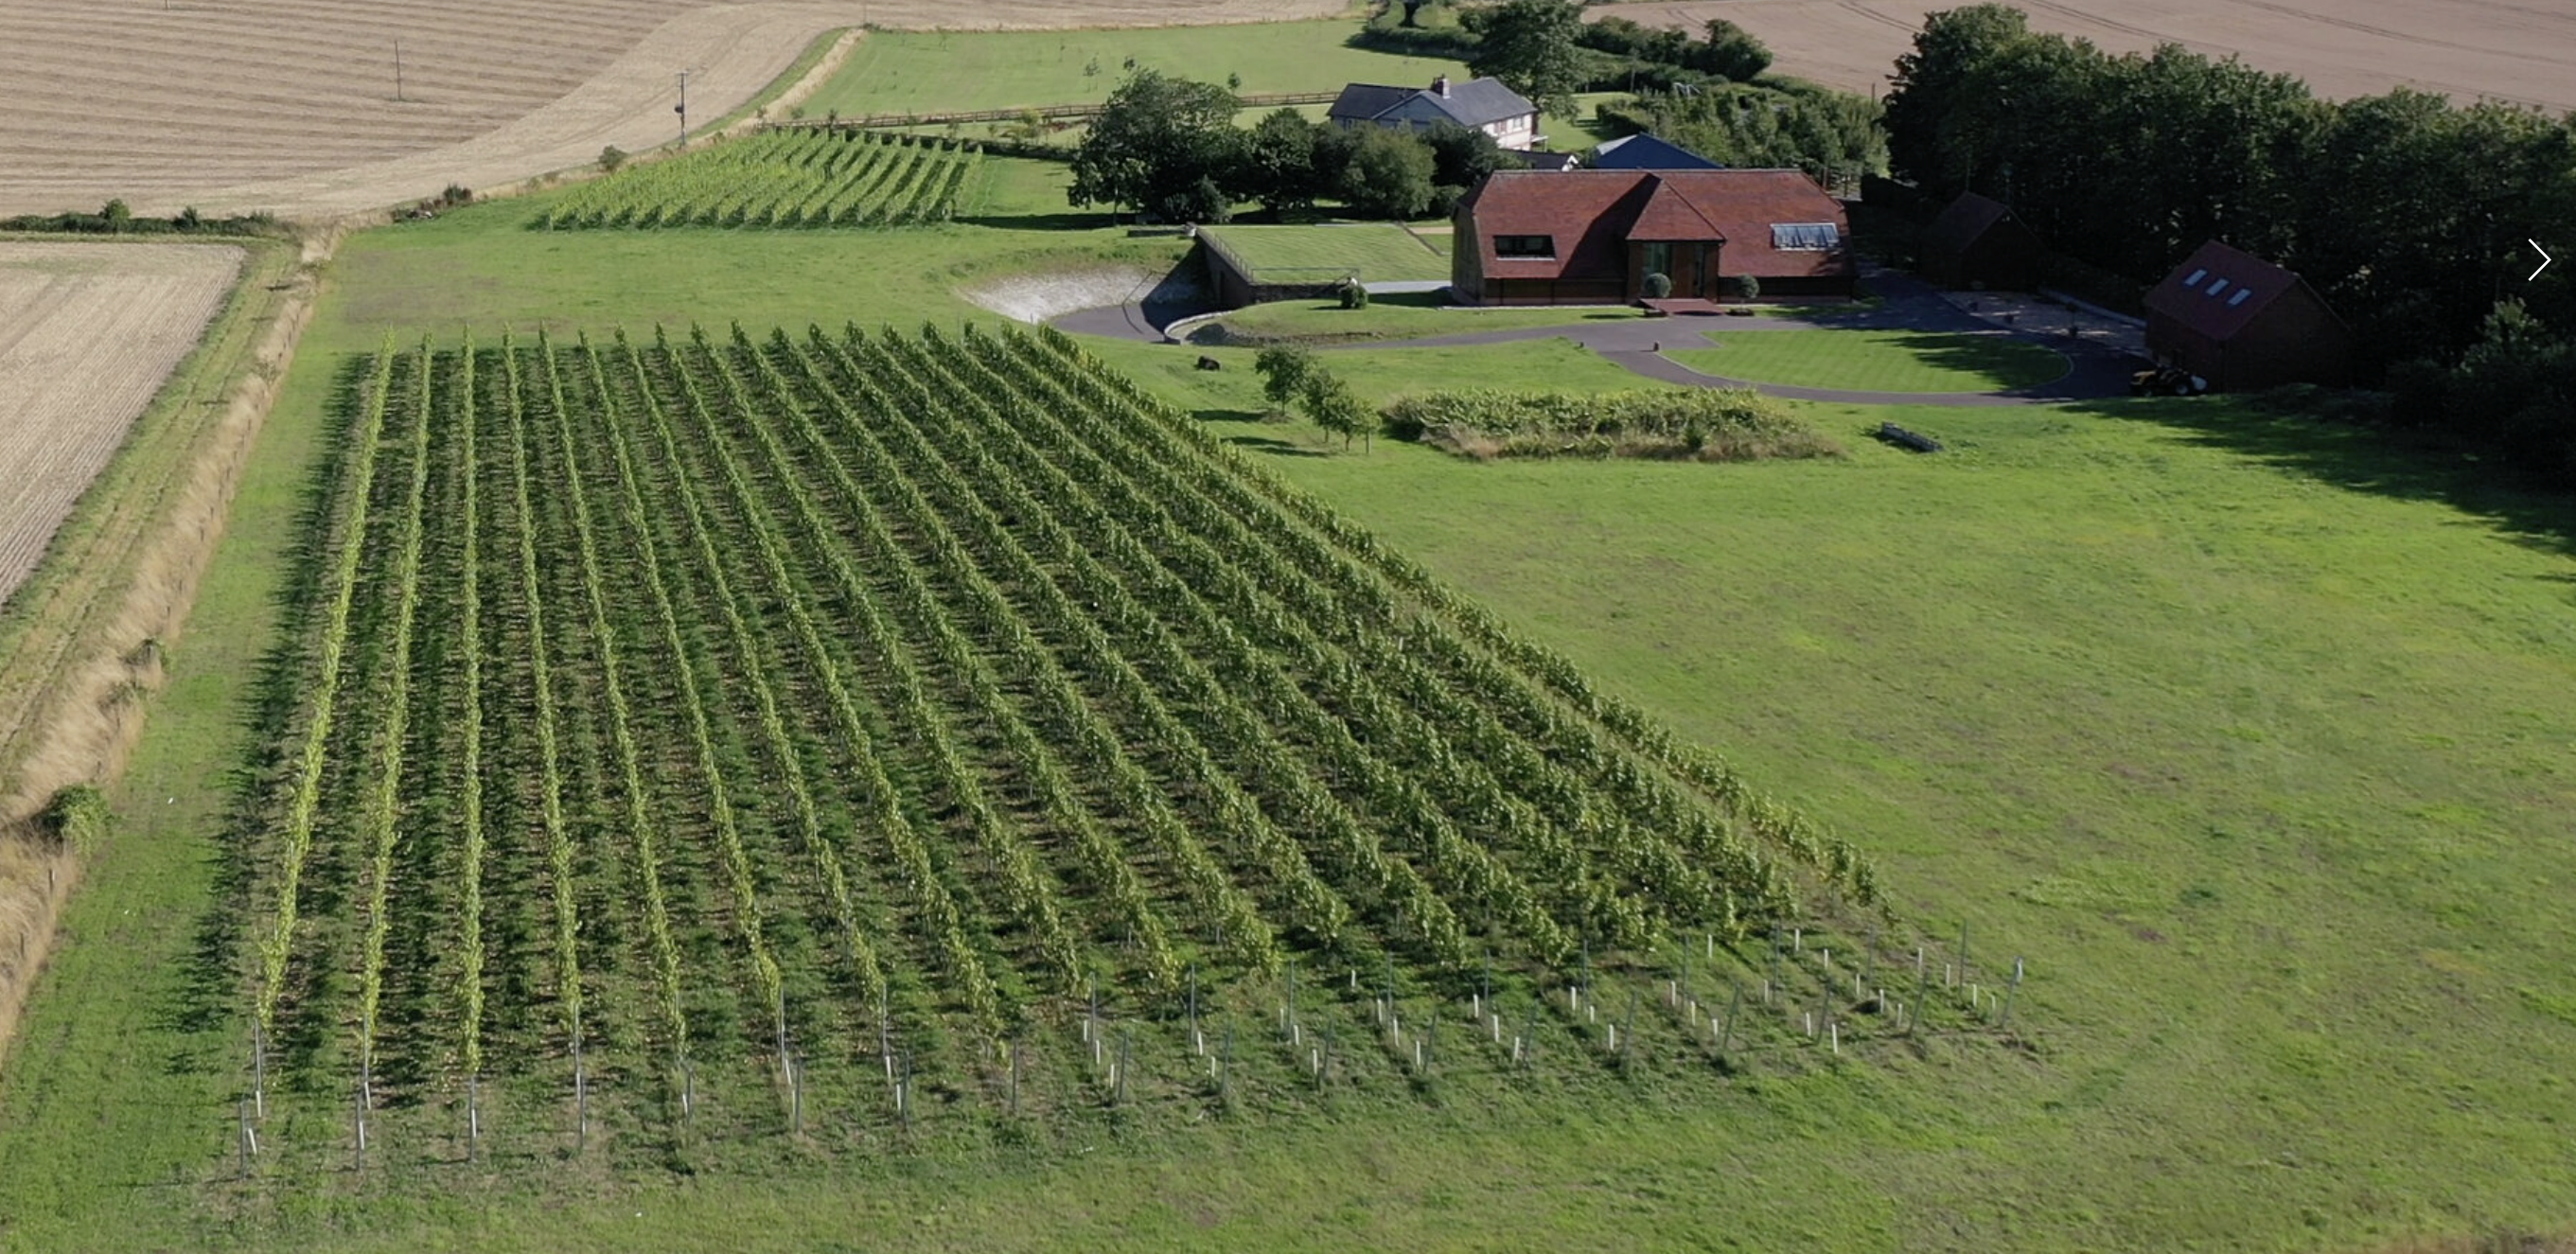 The beautiful Lone Farm and their vineyard